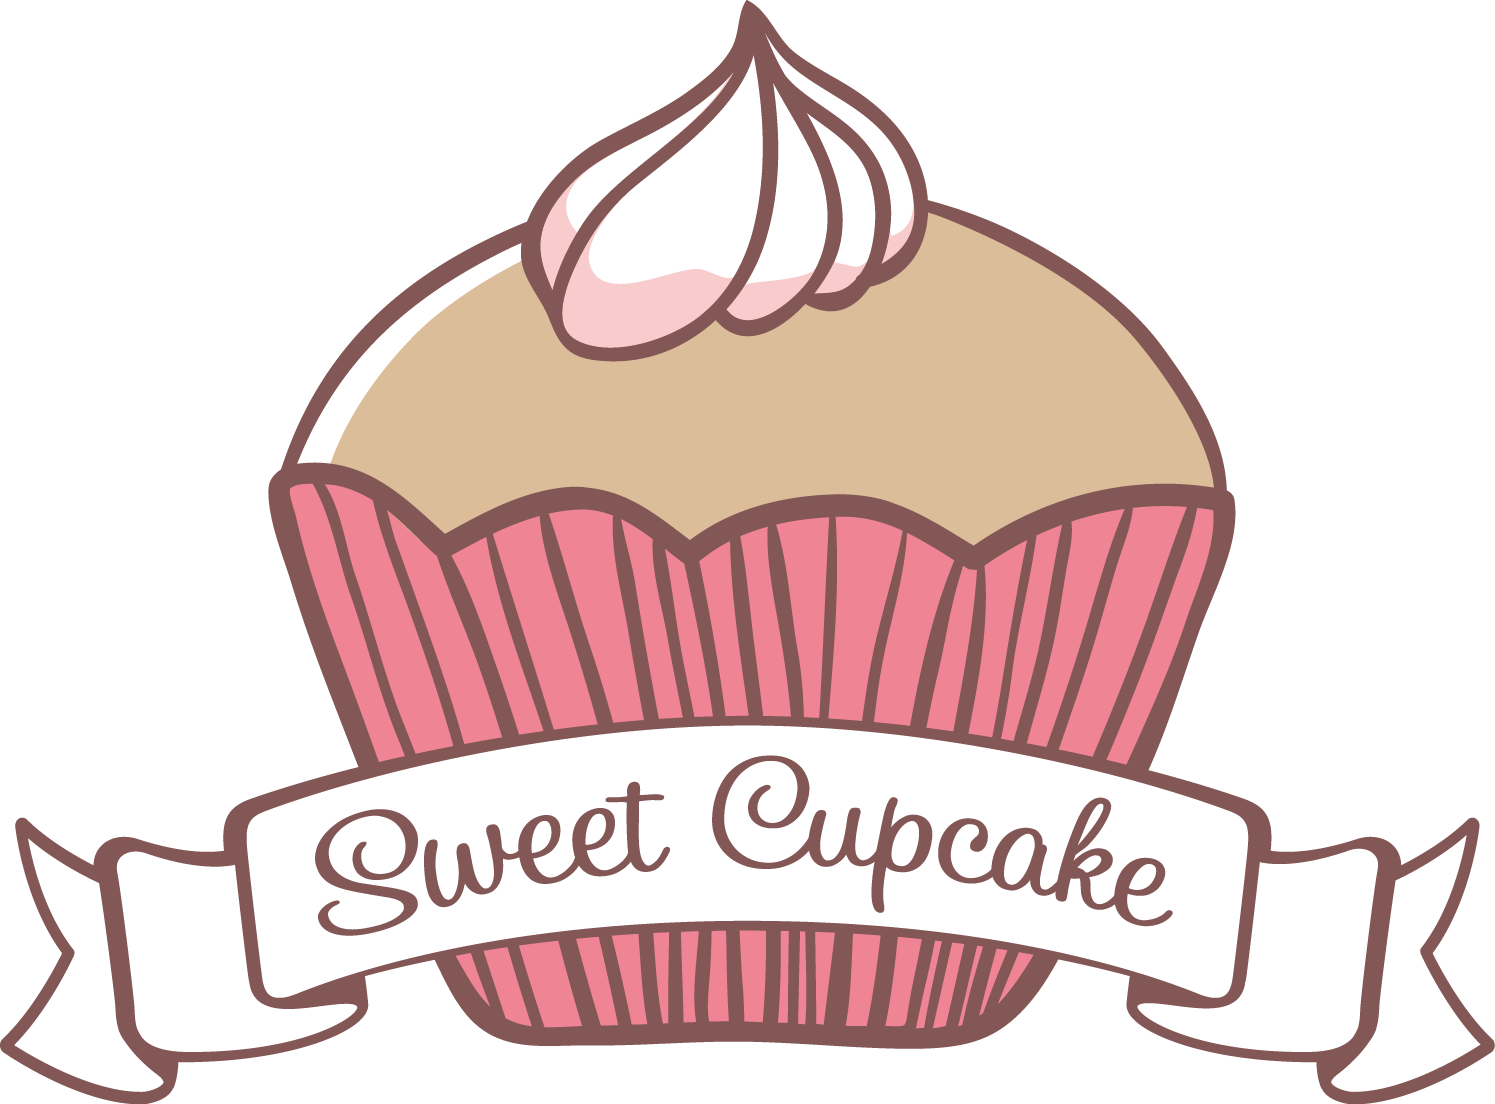 Sweet Cupcake World